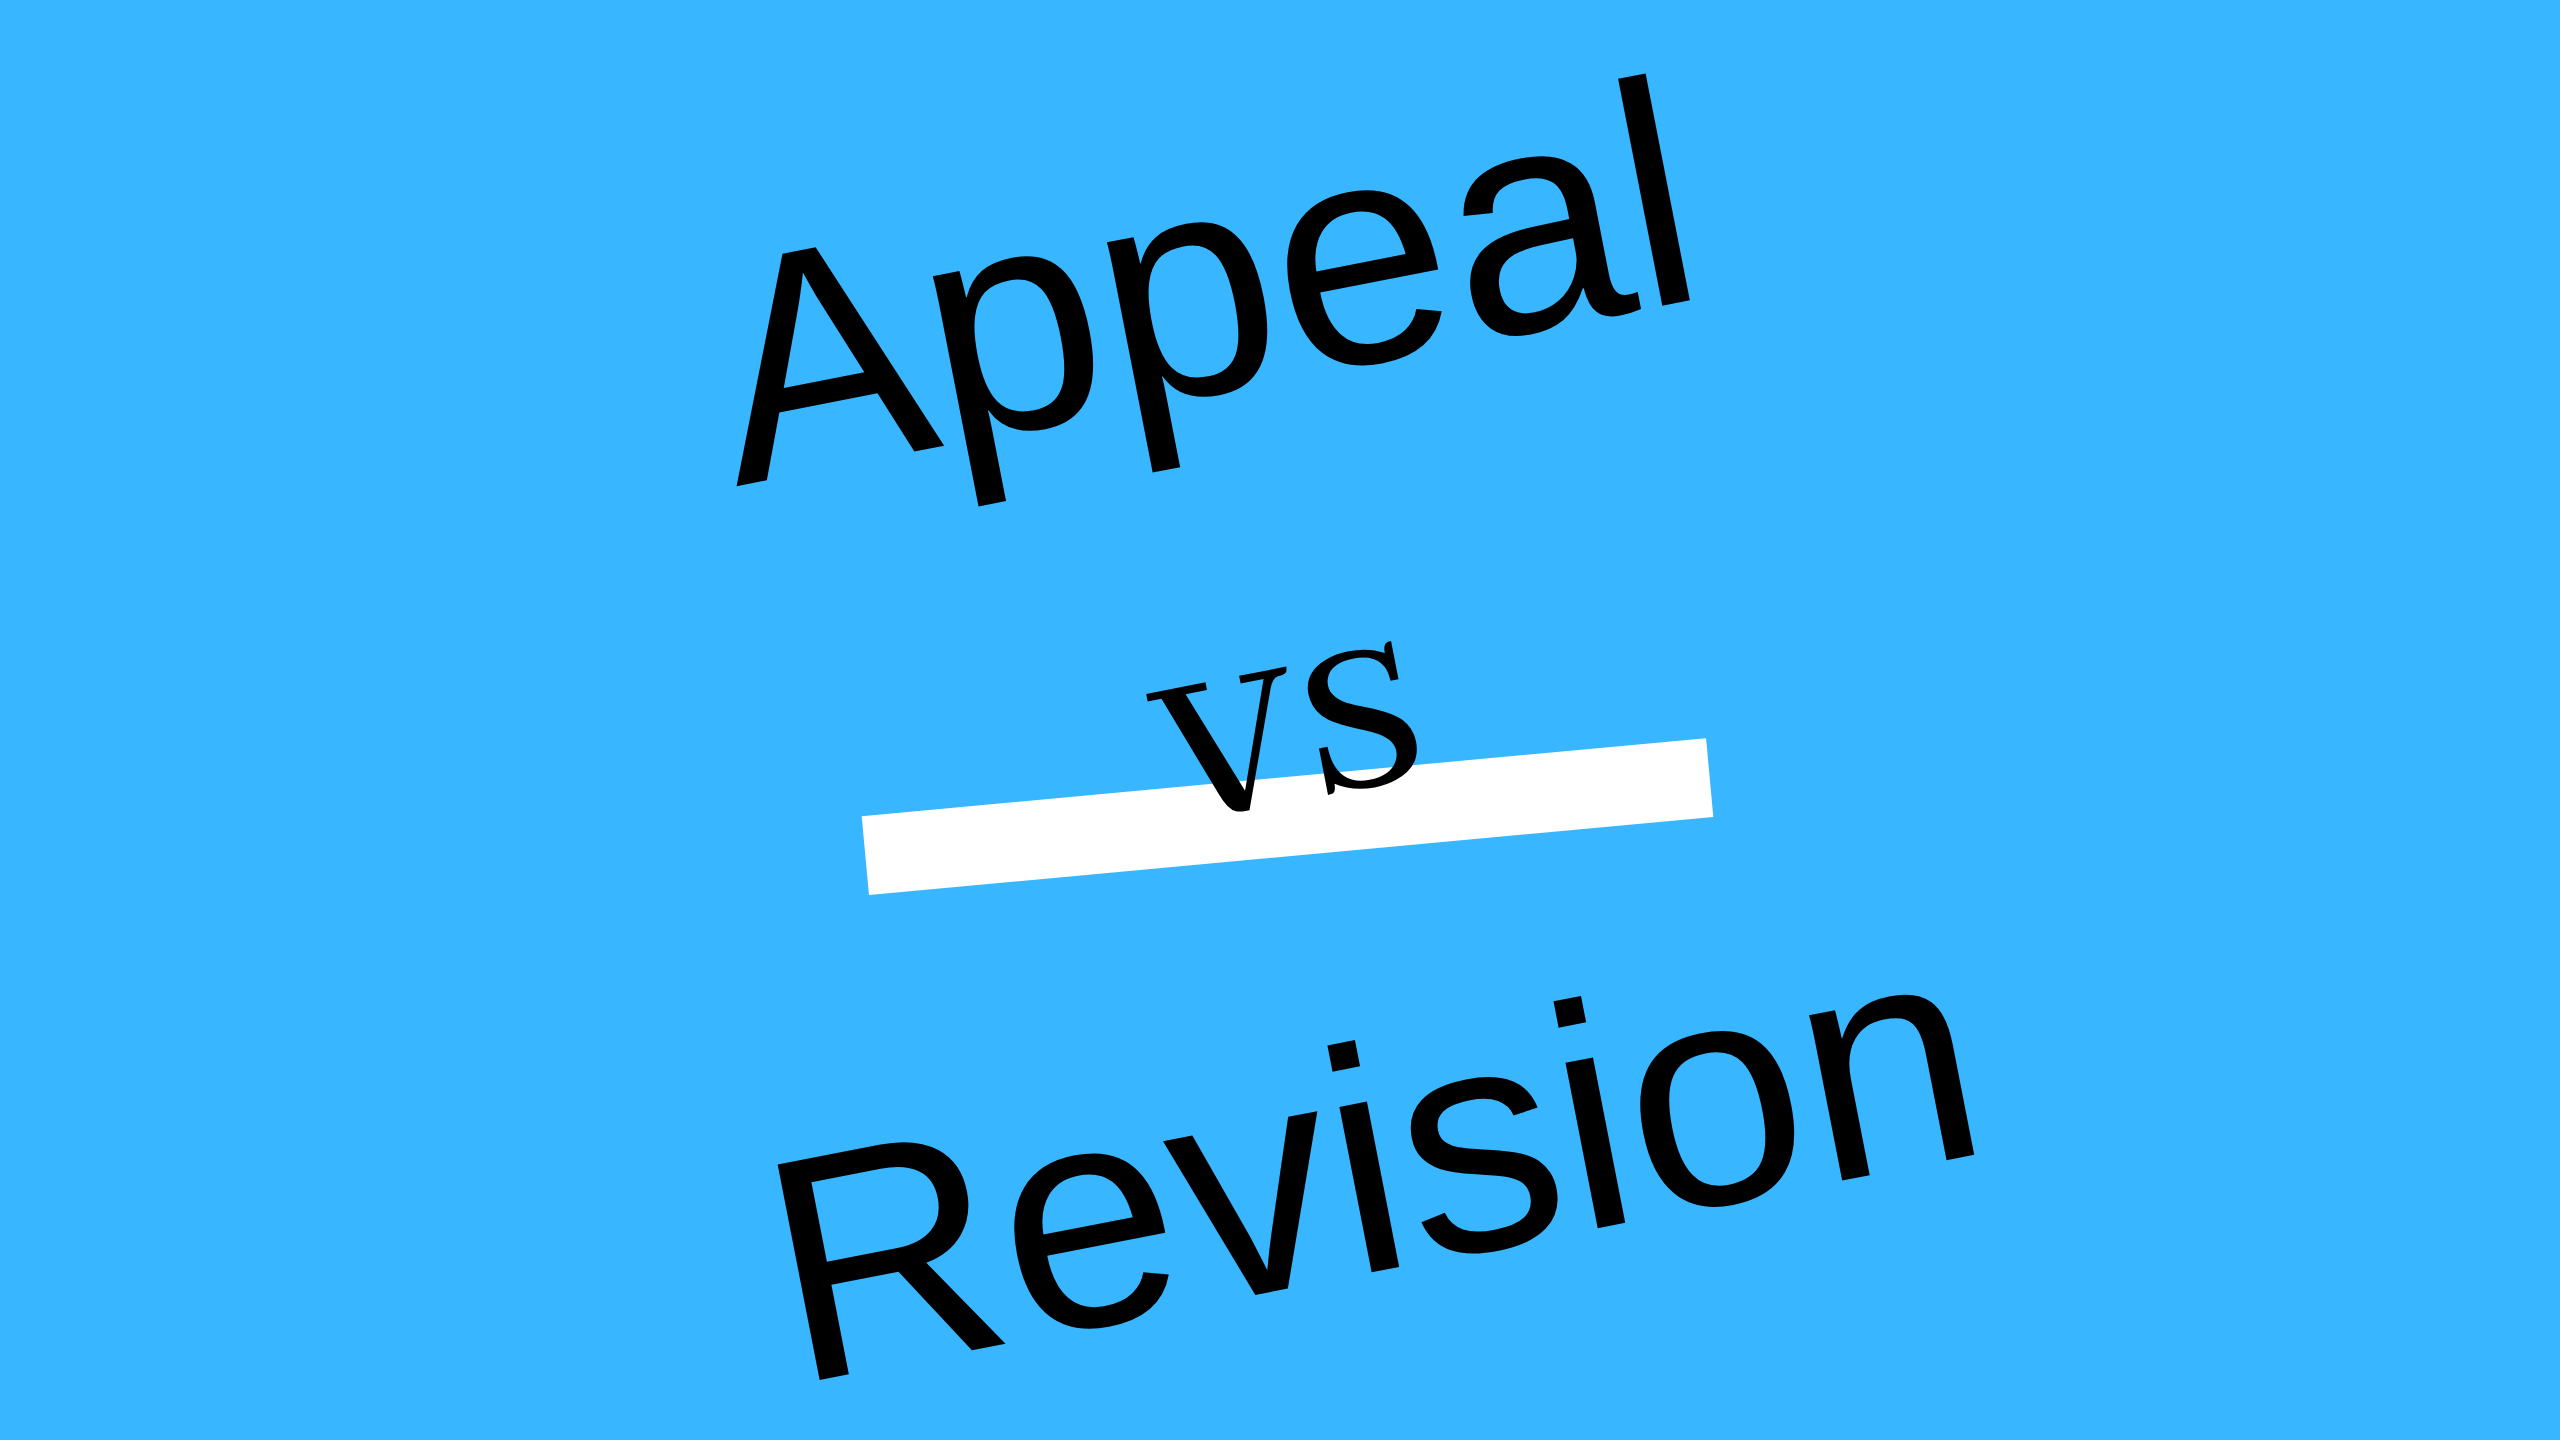 Difference between Appeal and Revision